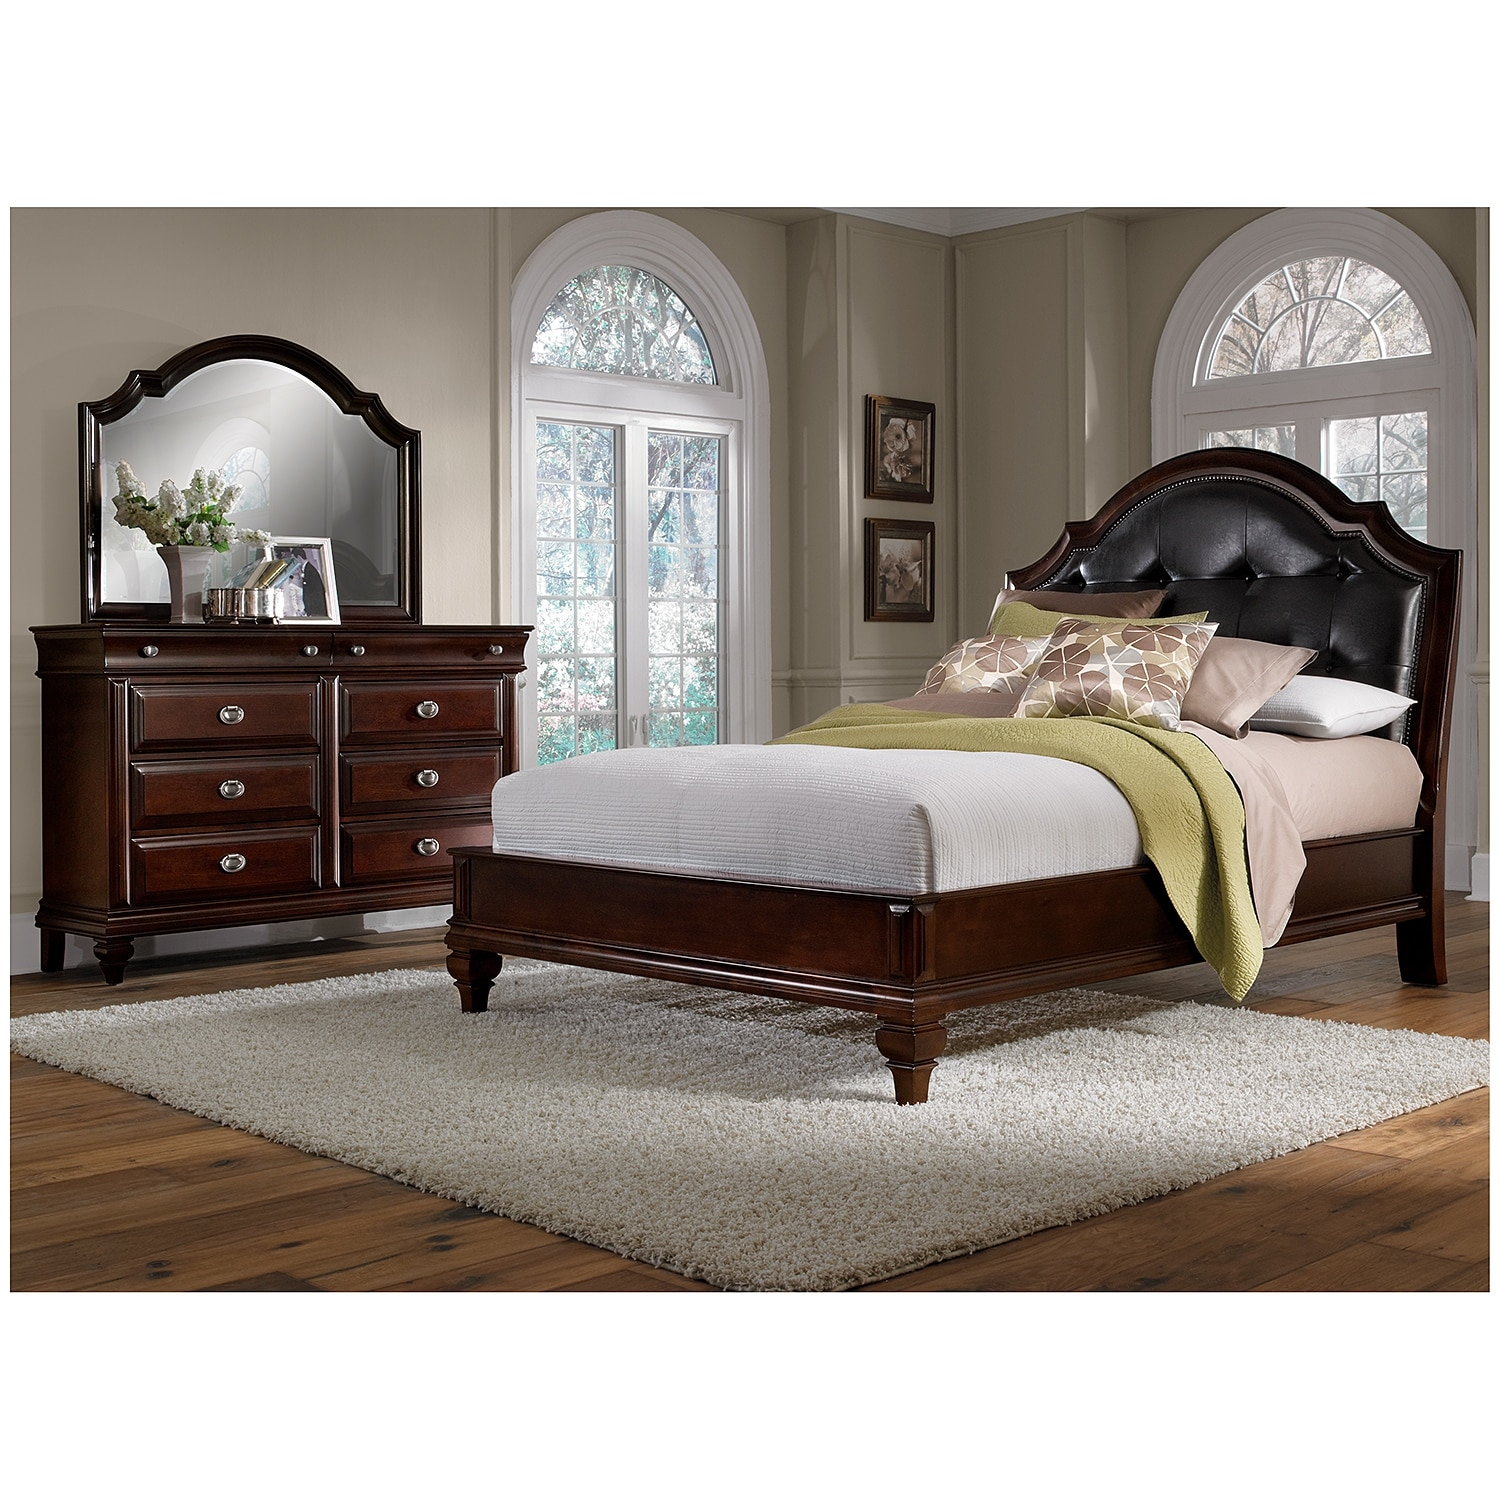 shop 5 piece bedroom sets value city furniture 17688 | 268051 fit inside 7c320 320 composite to center center 7c320 320 background color white